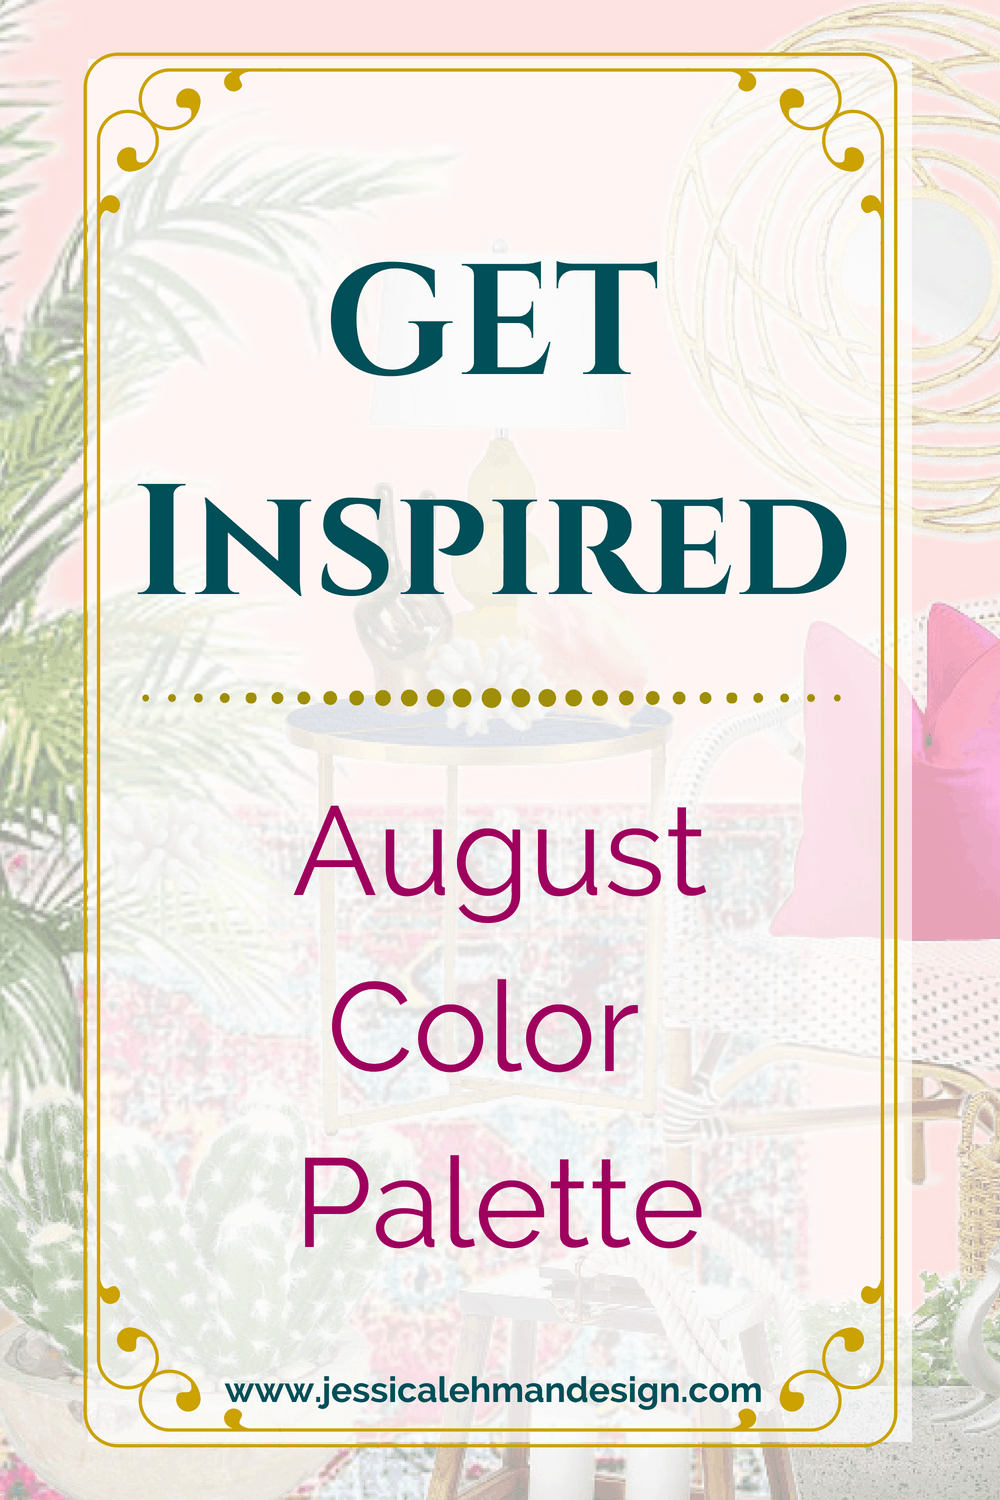 August Color palette